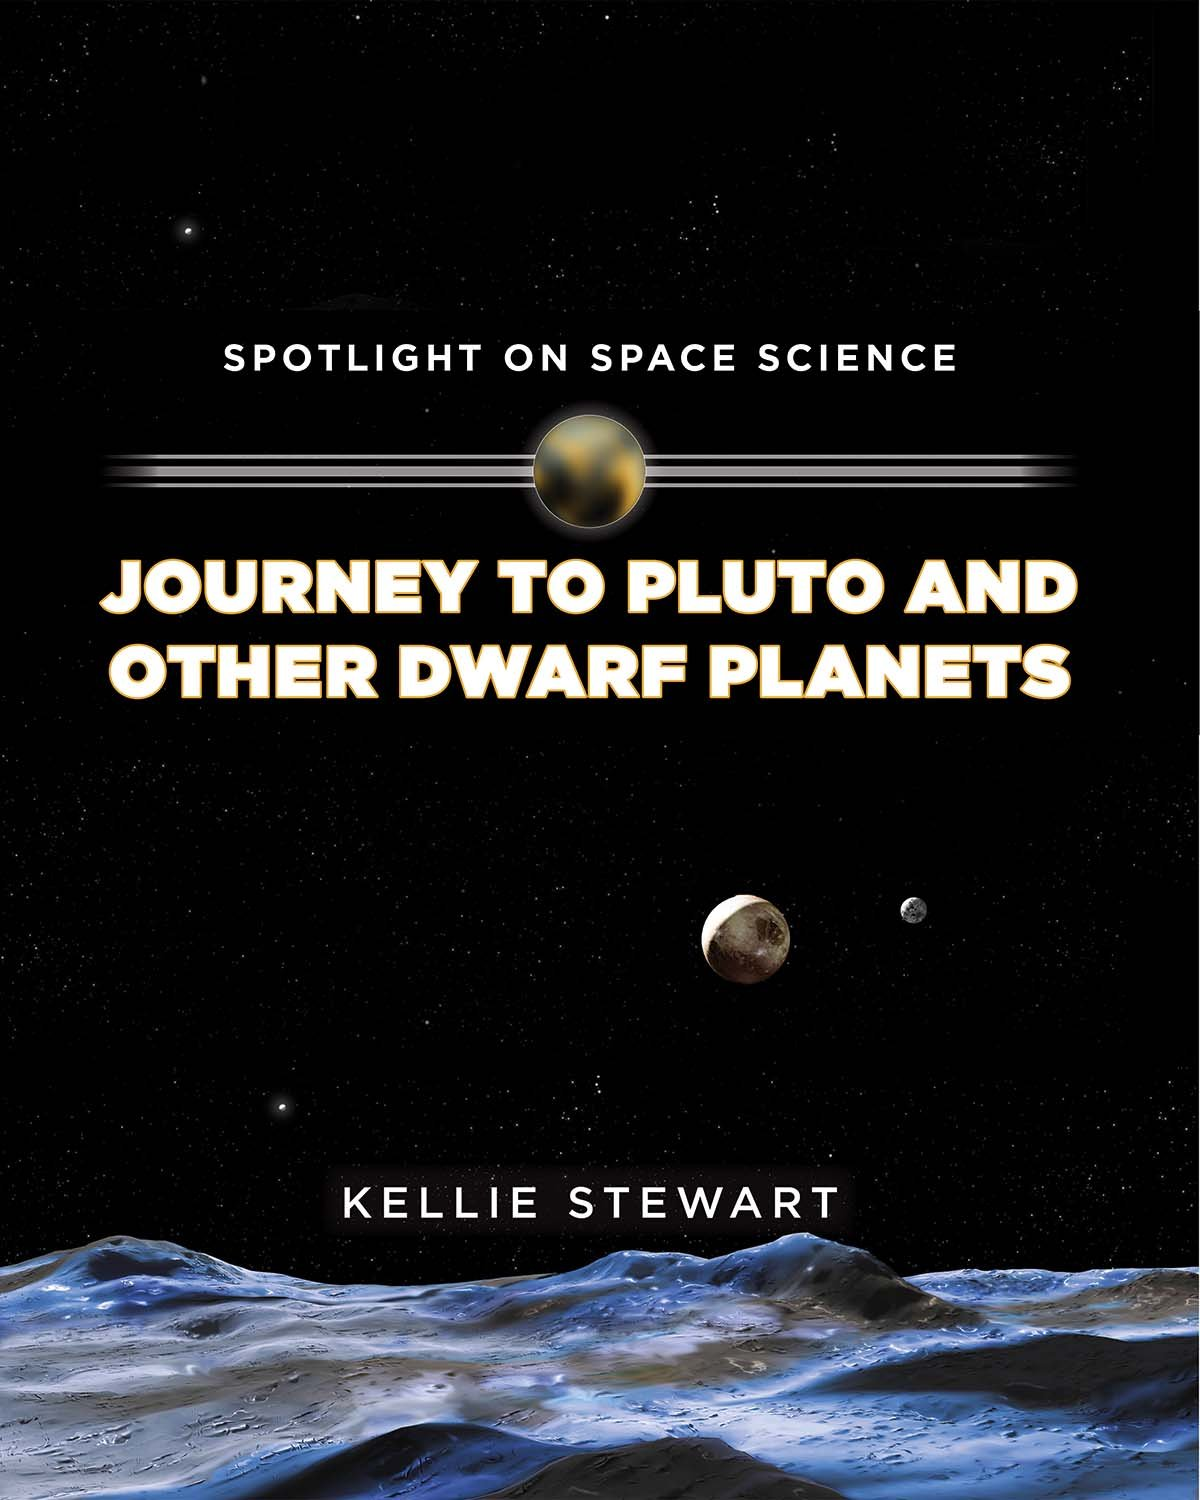 Journey to Pluto and Other Dwarf Planets (Spotlight on Space Science) pdf